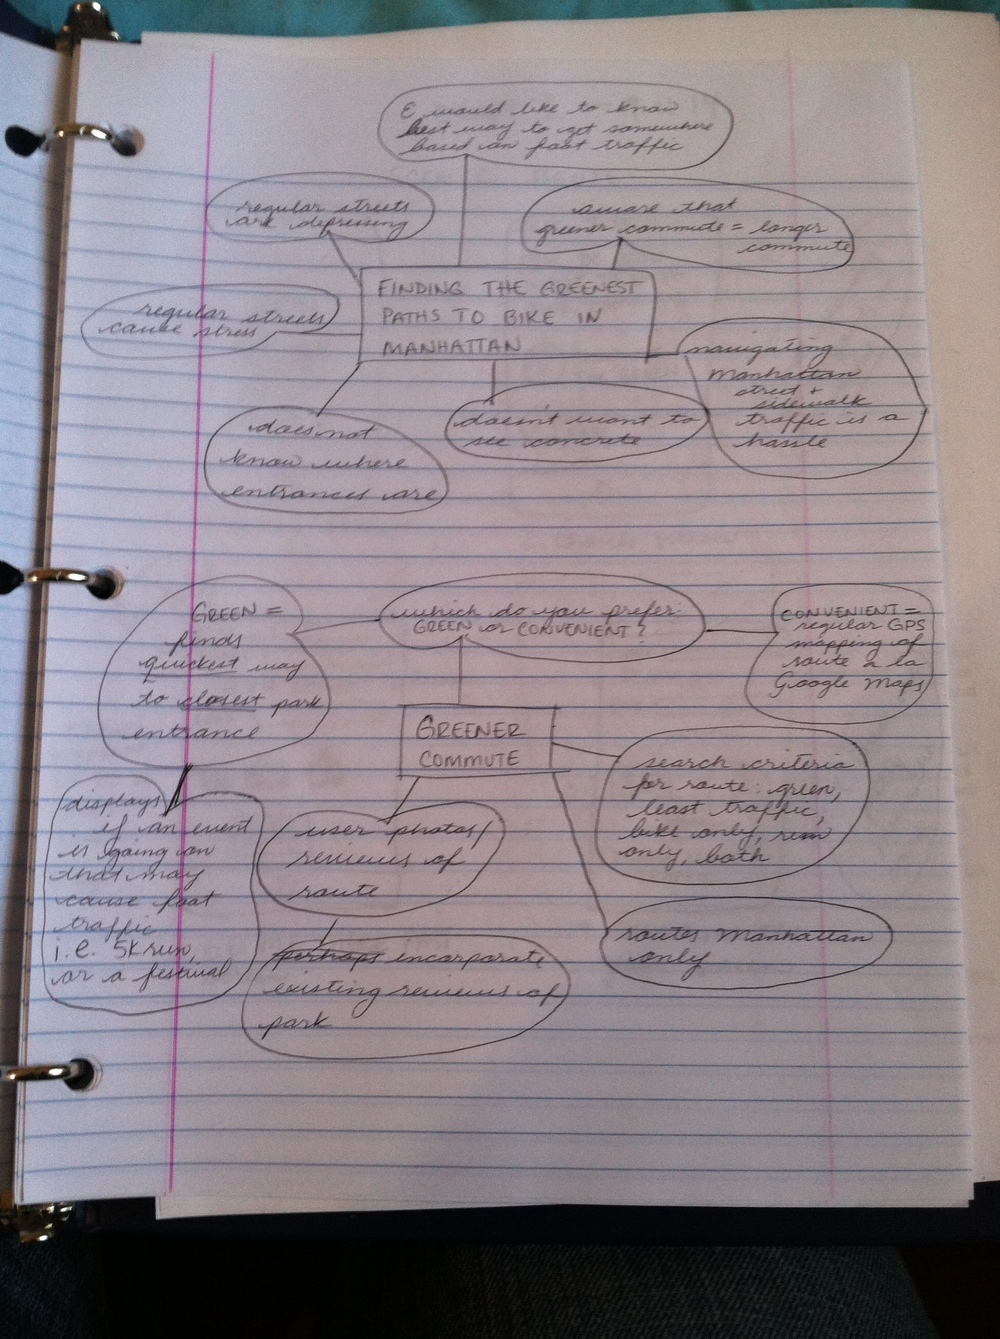 Concept map of original brainstorming